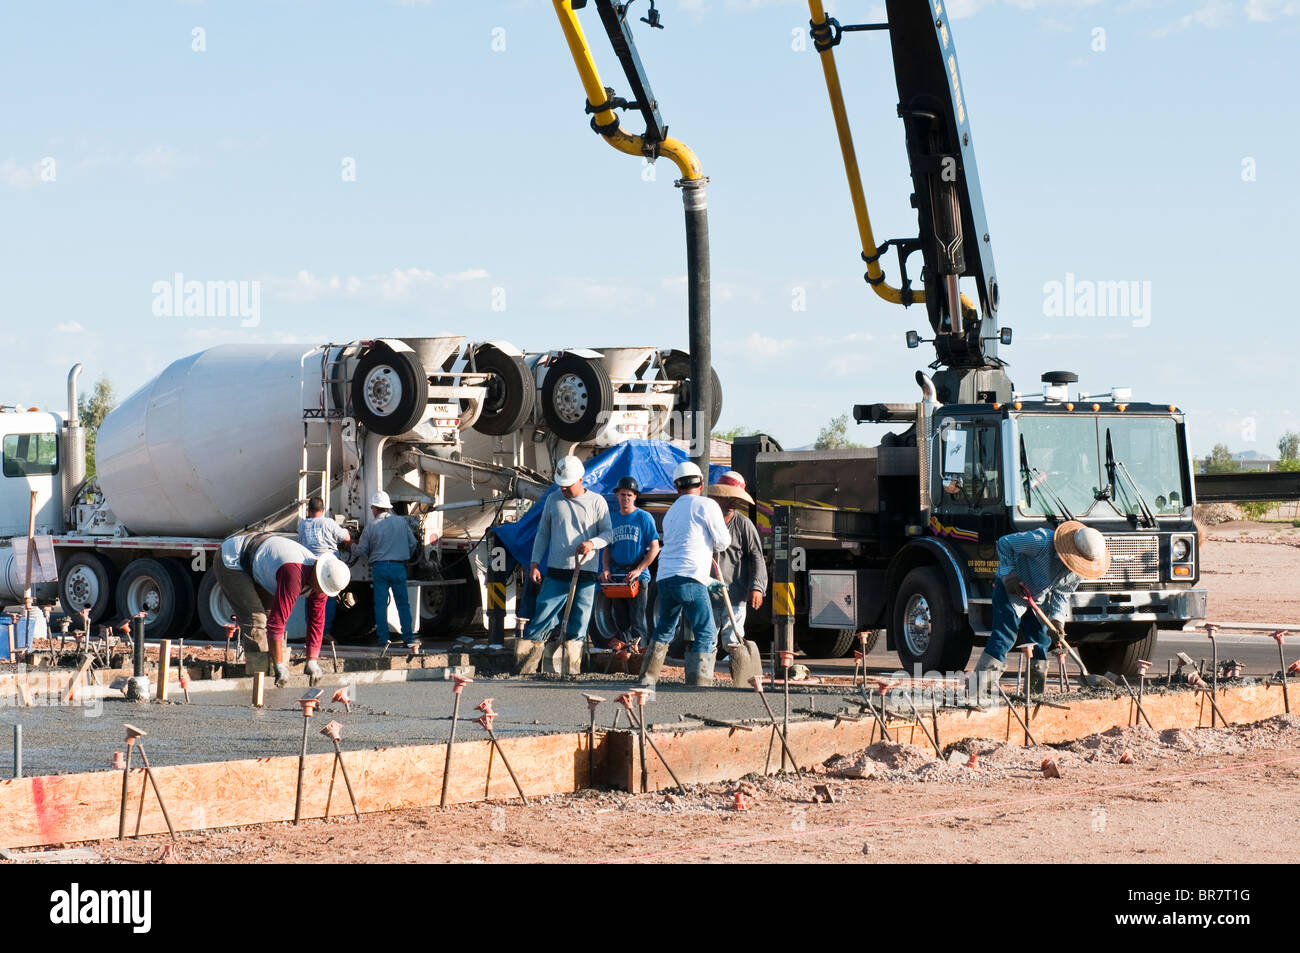 A crew of workers pour a concrete slab for a new house under construction in Arizona. - Stock Image